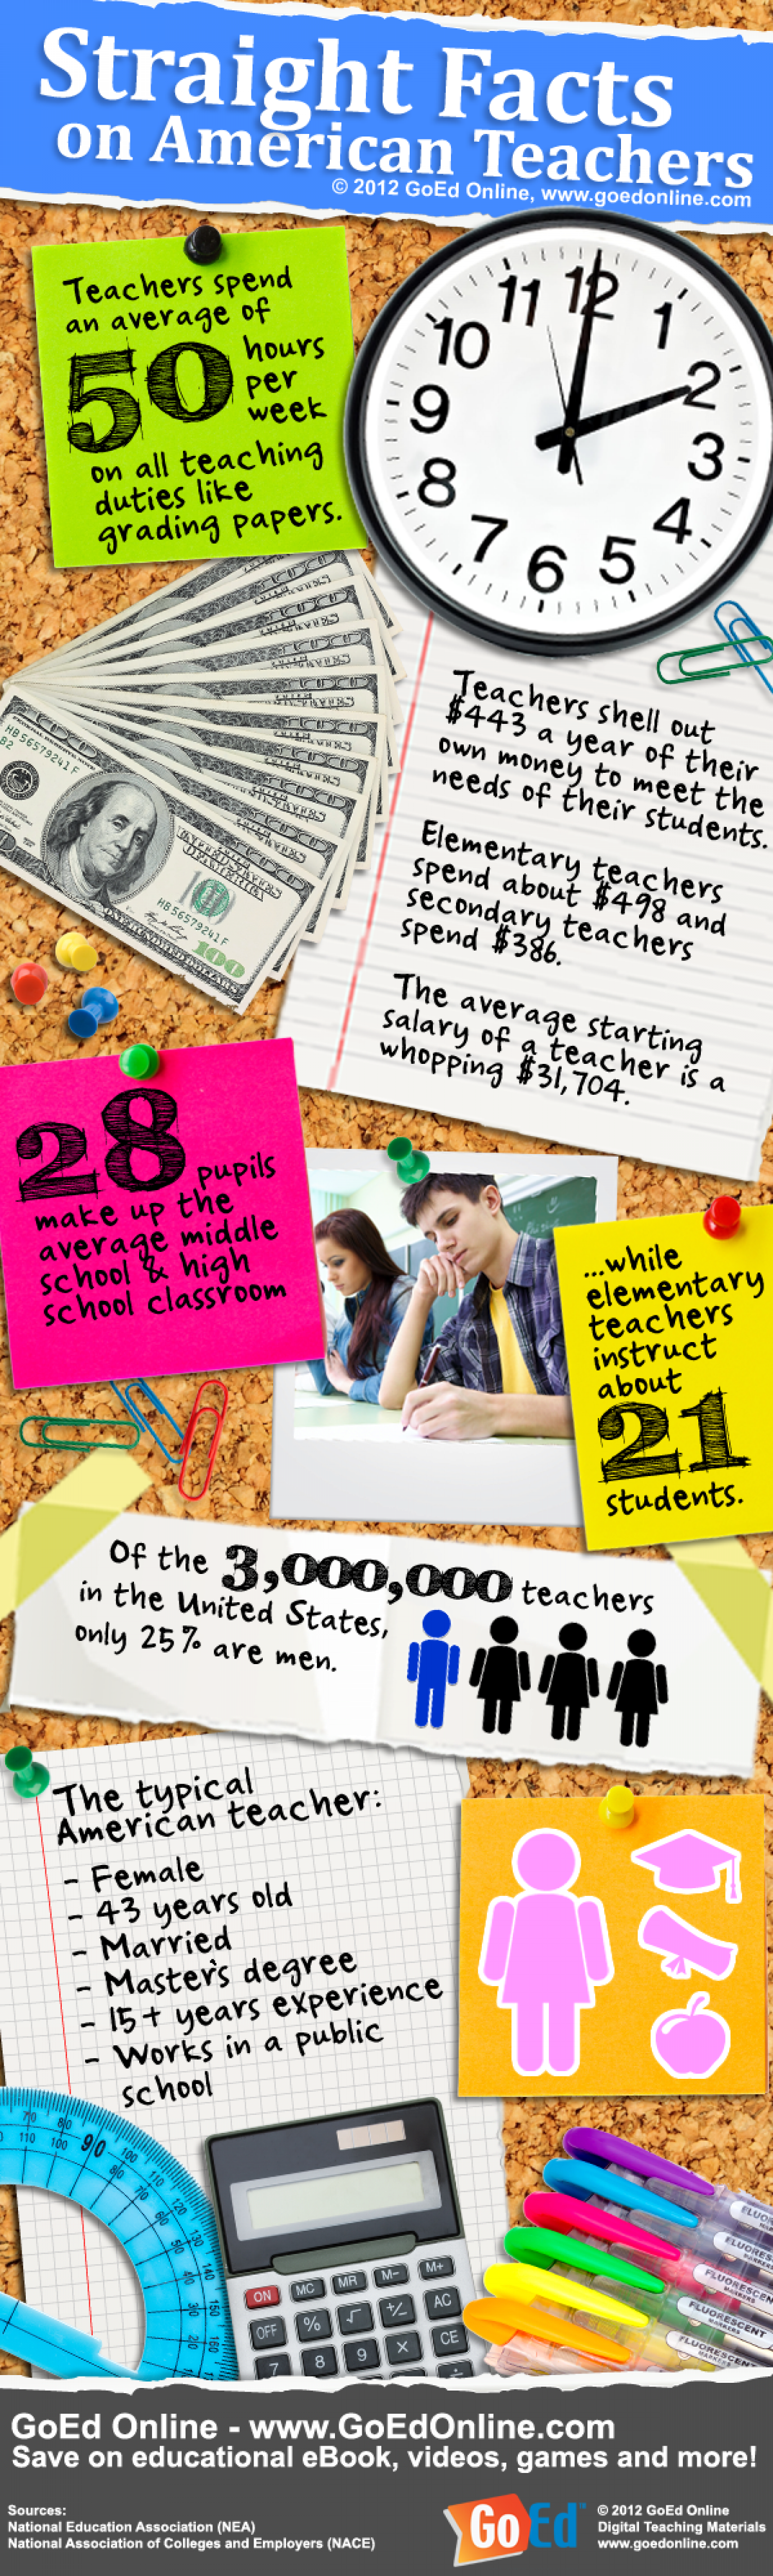 Straight Facts on American Teachers Infographic